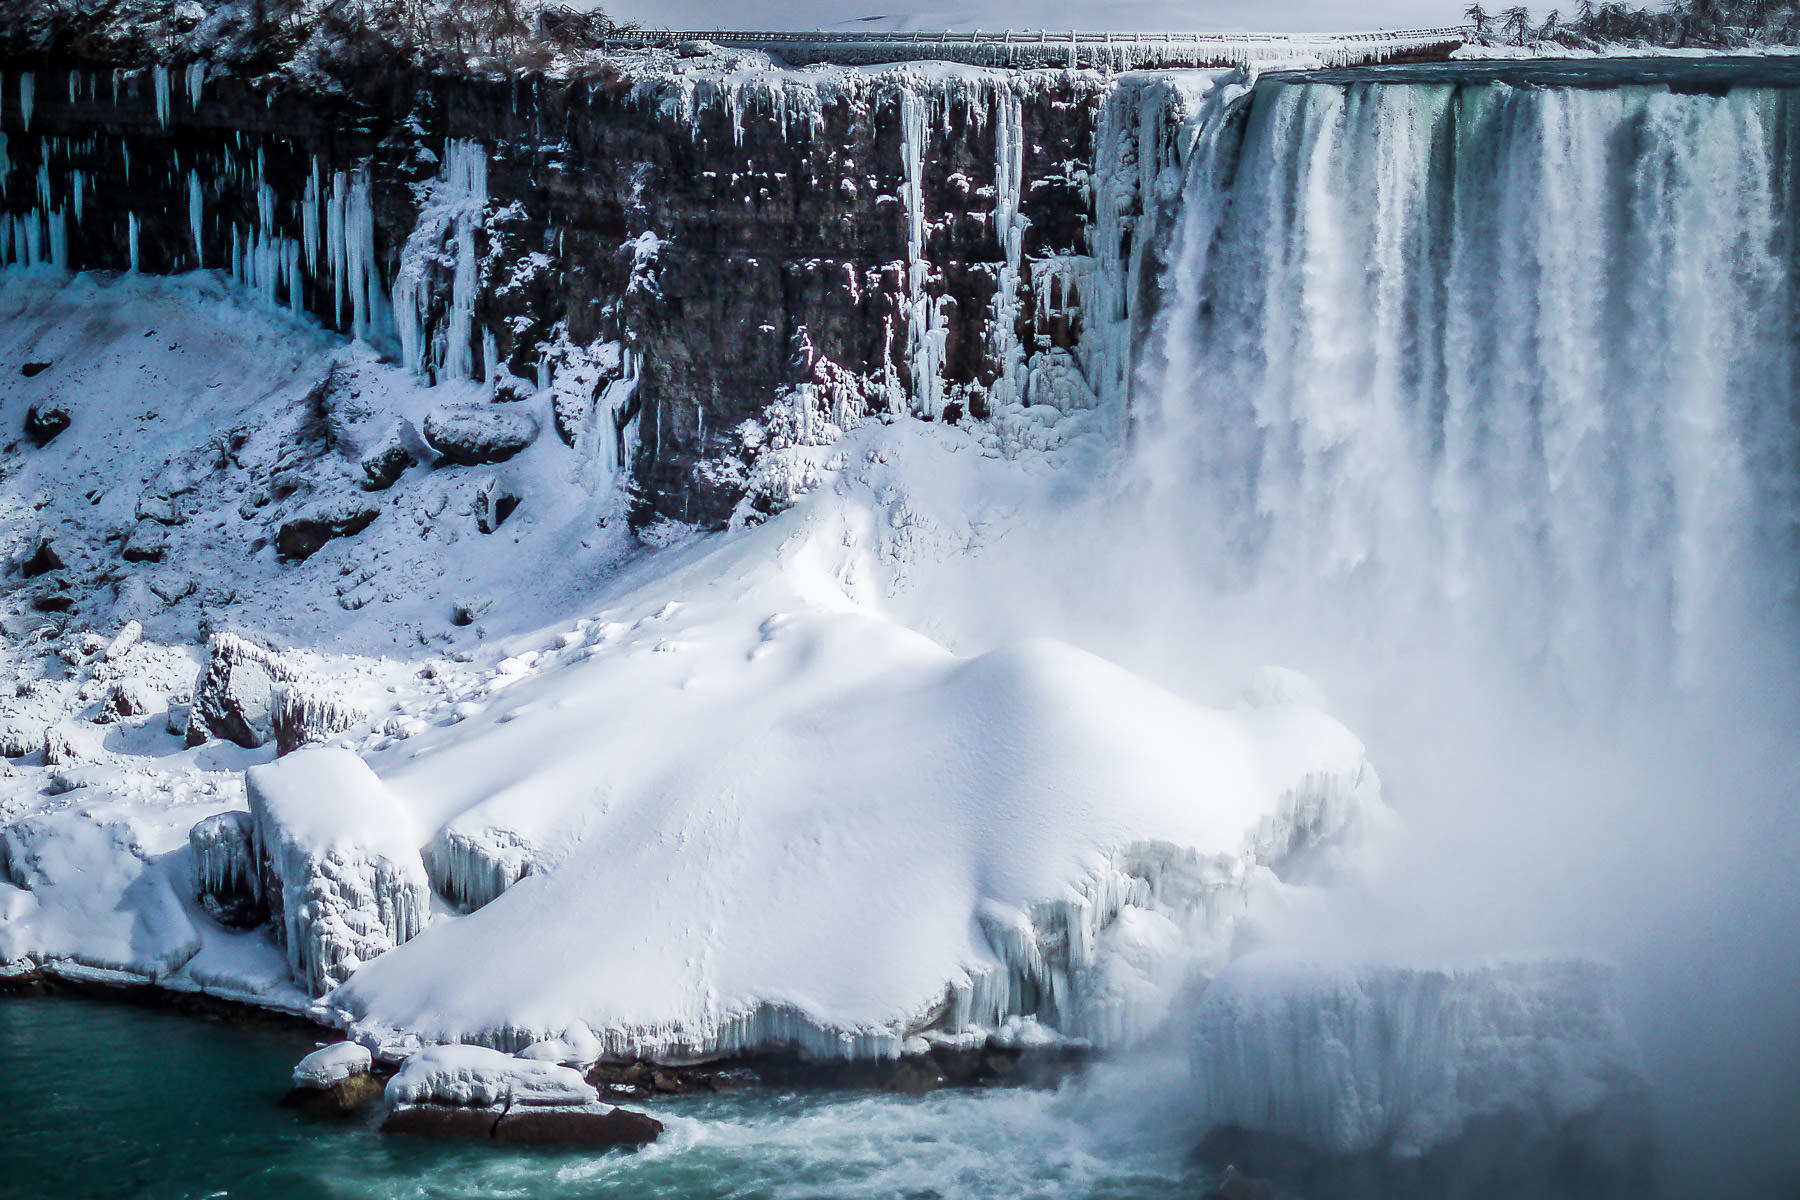 The American Falls at Niagara Falls, frozen in the winter of 2006.